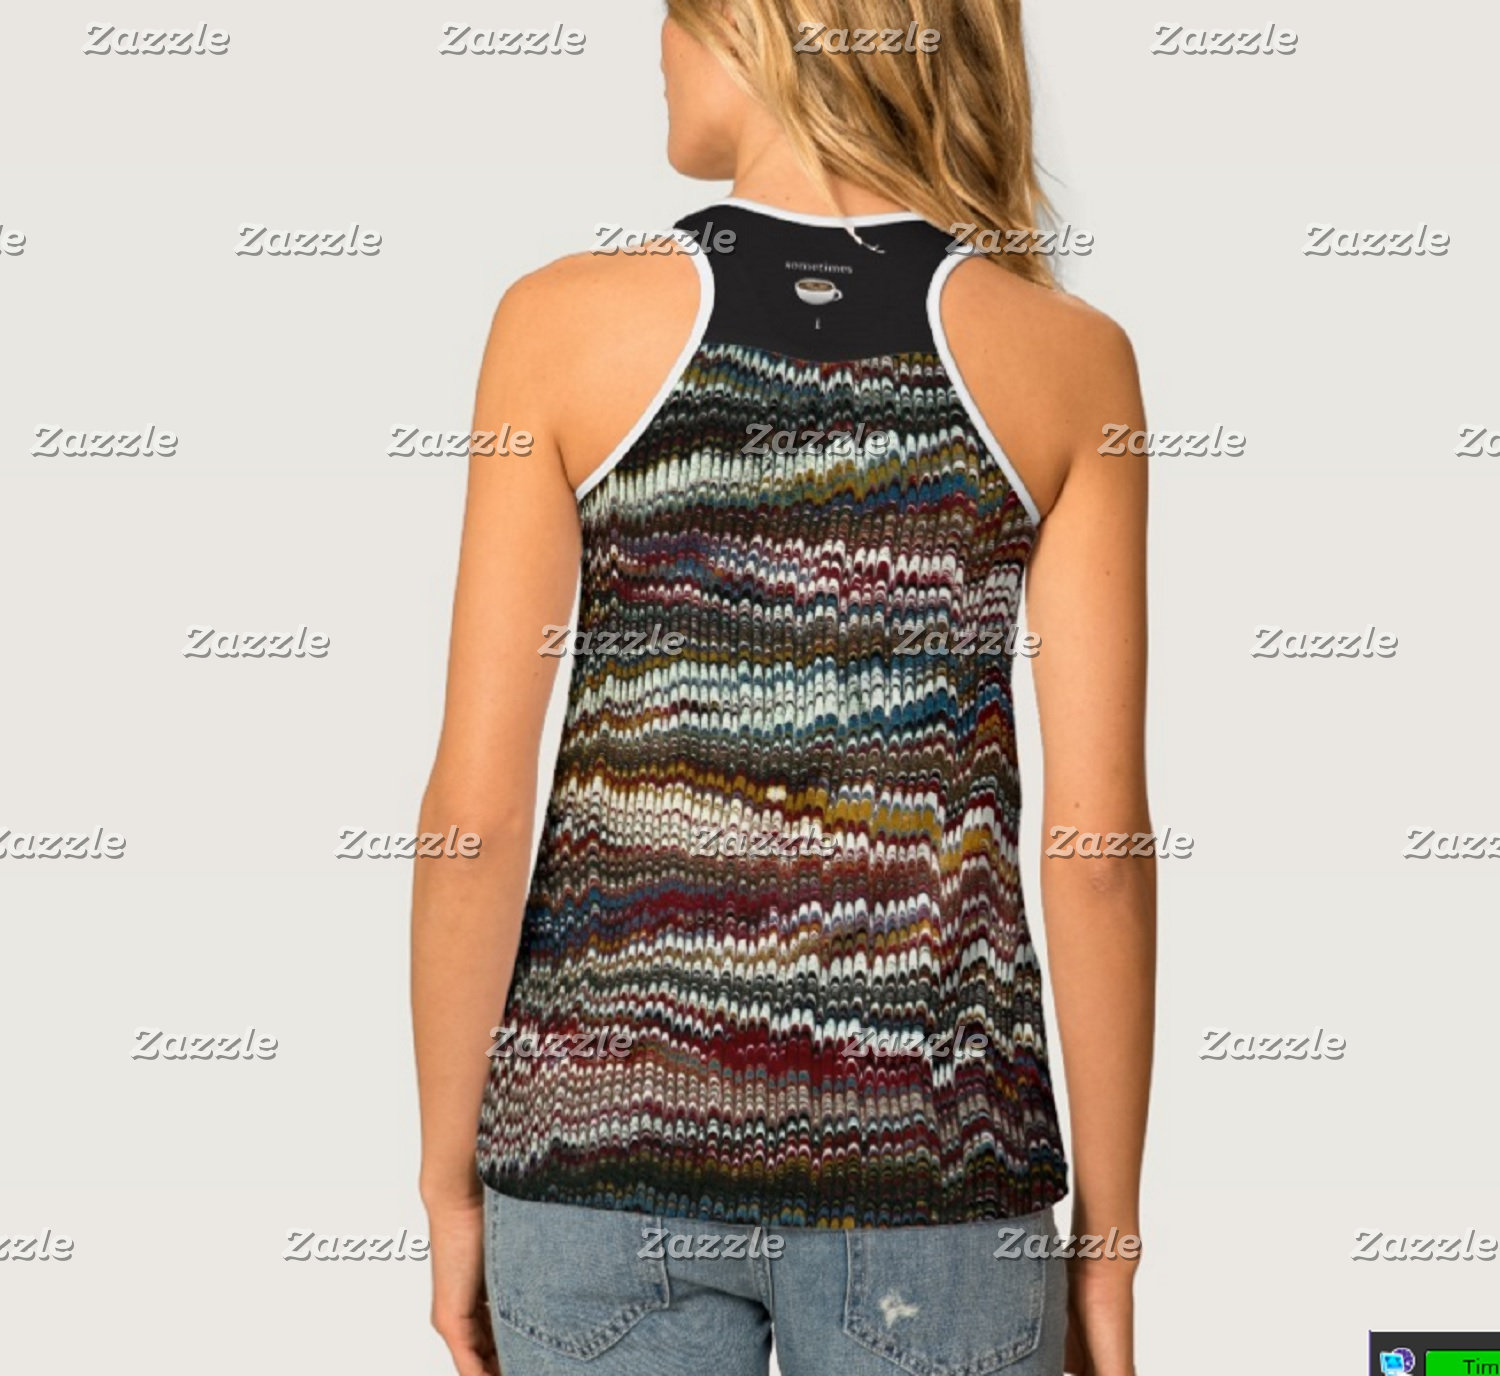 !! 1 All Over Print Womens Racerback Tanks